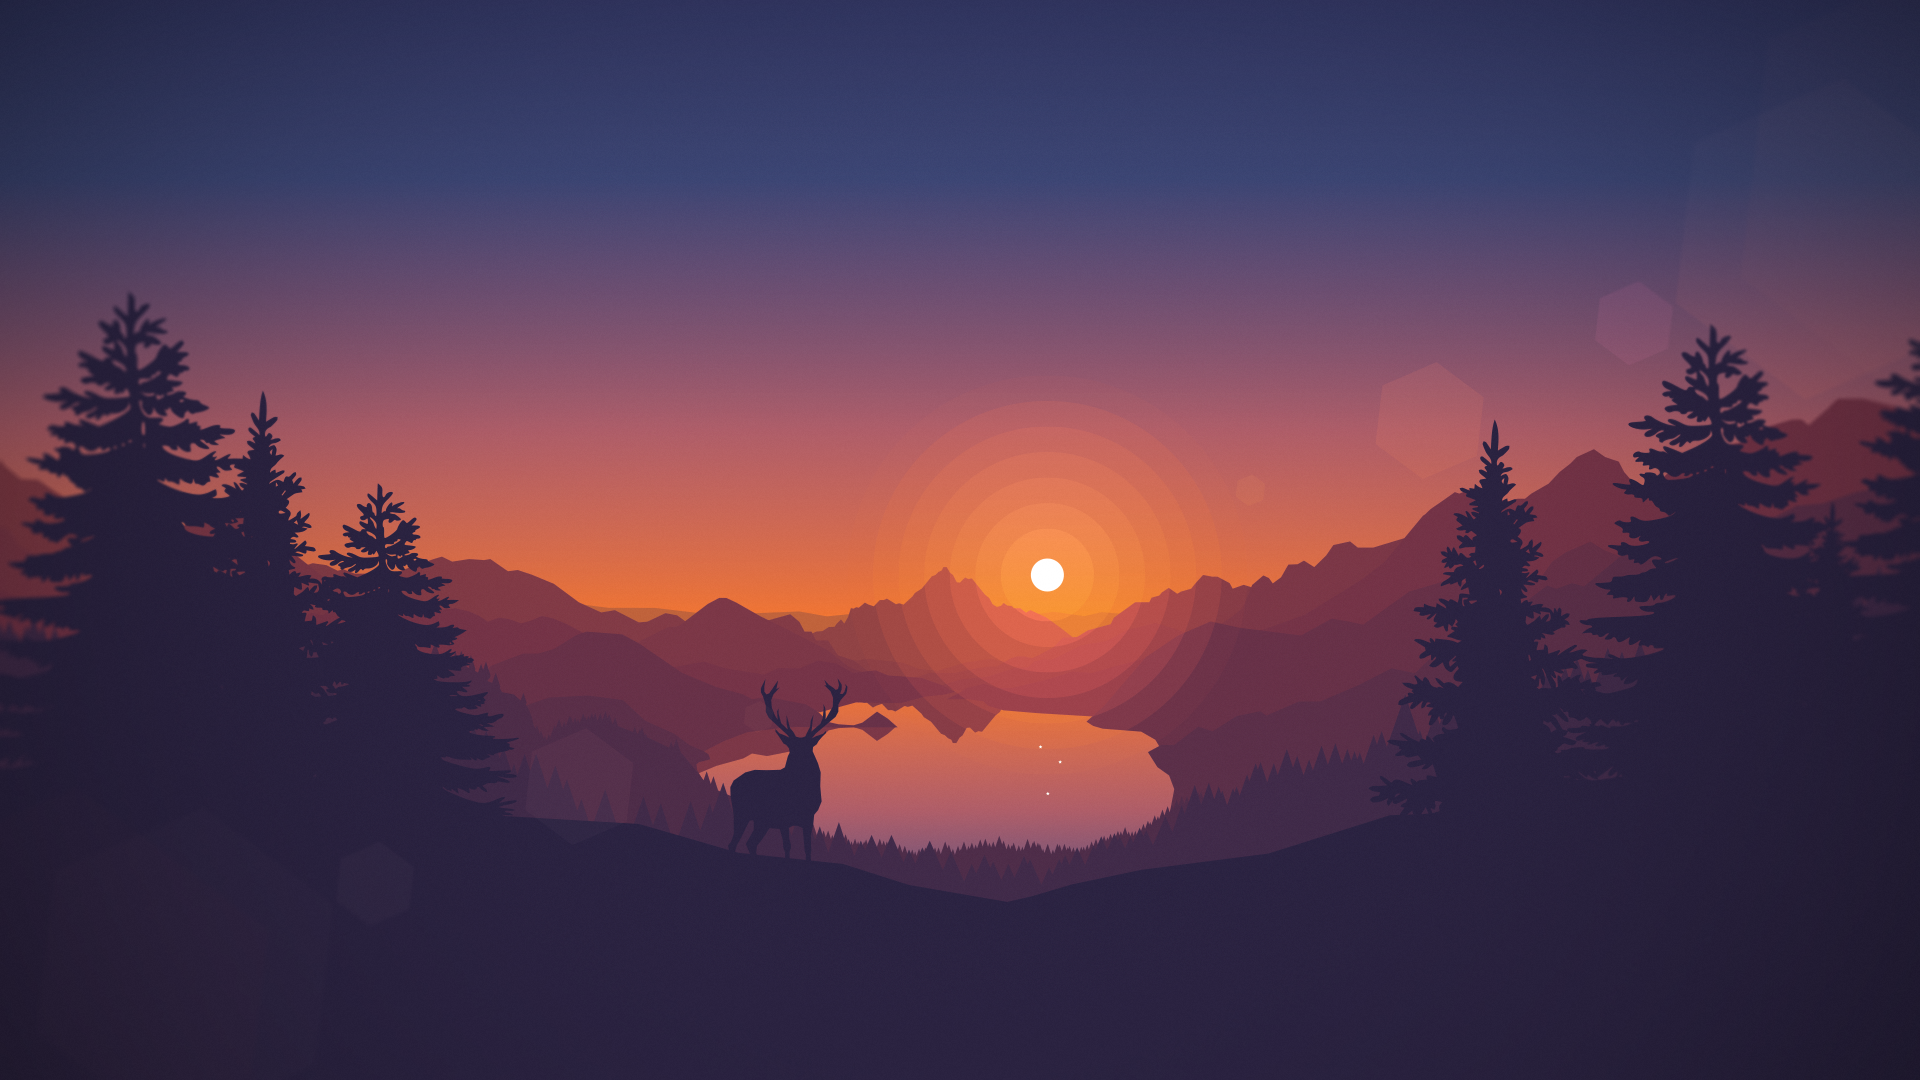 General 1920x1080 Sunset Drawing Animals Lake Landscape Deer Artwork Silhouette Nature Digital Art T Landscape Wallpaper Minimalist Wallpaper Minimal Wallpaper